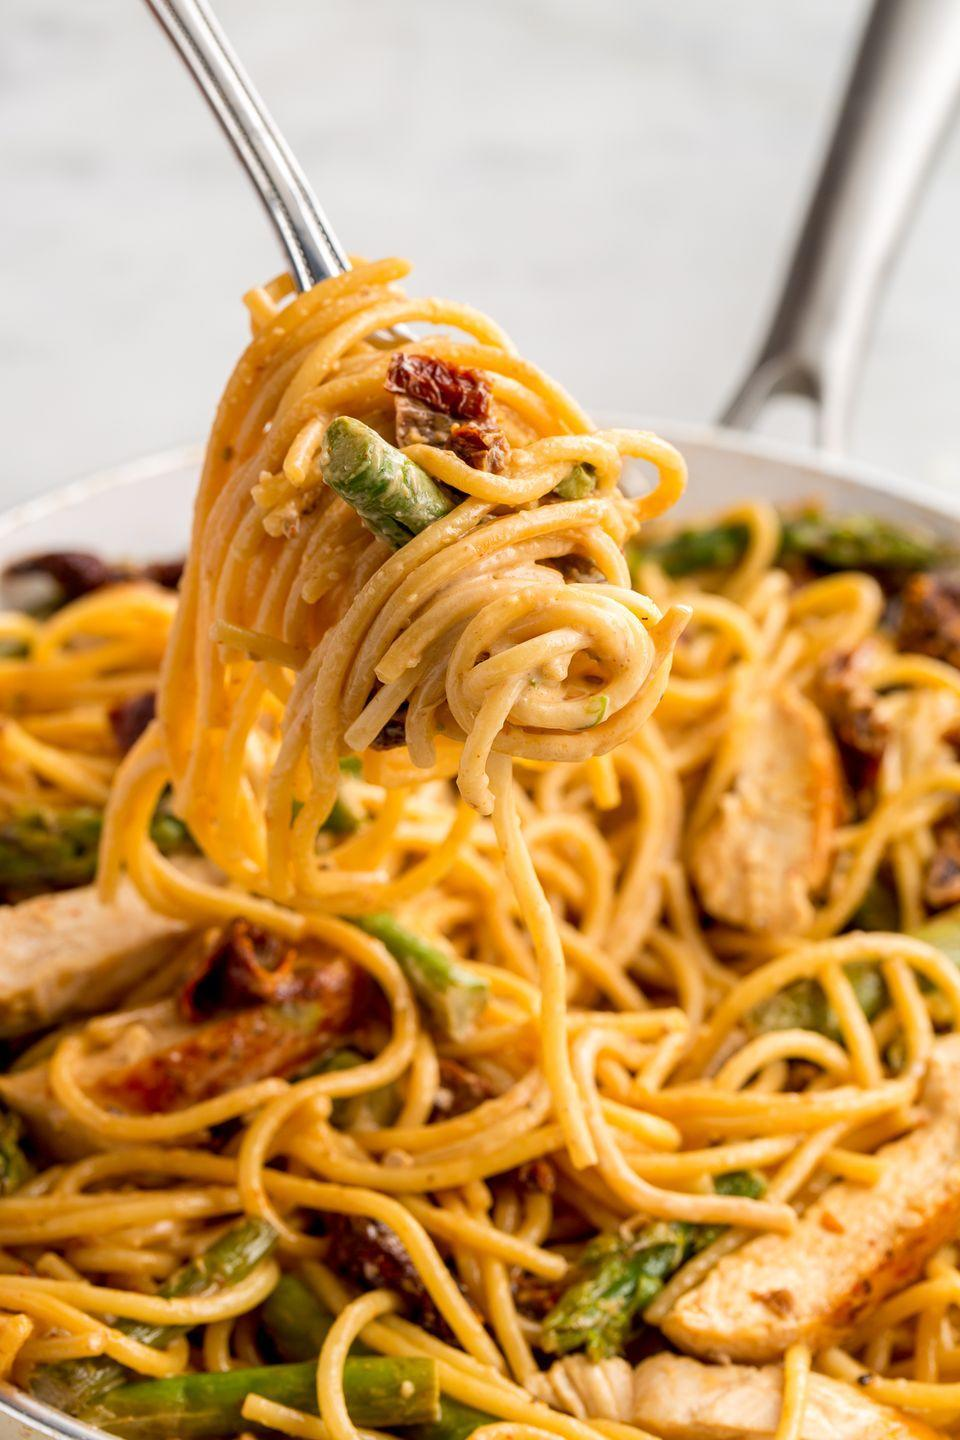 """<p>Asparagus lovers, prepare to freak out over this sundried tomato creamy pasta.</p><p>Get the recipe from <a href=""""https://www.delish.com/cooking/recipe-ideas/recipes/a46534/asparagus-sundried-tomato-and-chicken-spaghetti-recipe/"""" rel=""""nofollow noopener"""" target=""""_blank"""" data-ylk=""""slk:Delish"""" class=""""link rapid-noclick-resp"""">Delish</a>.</p>"""